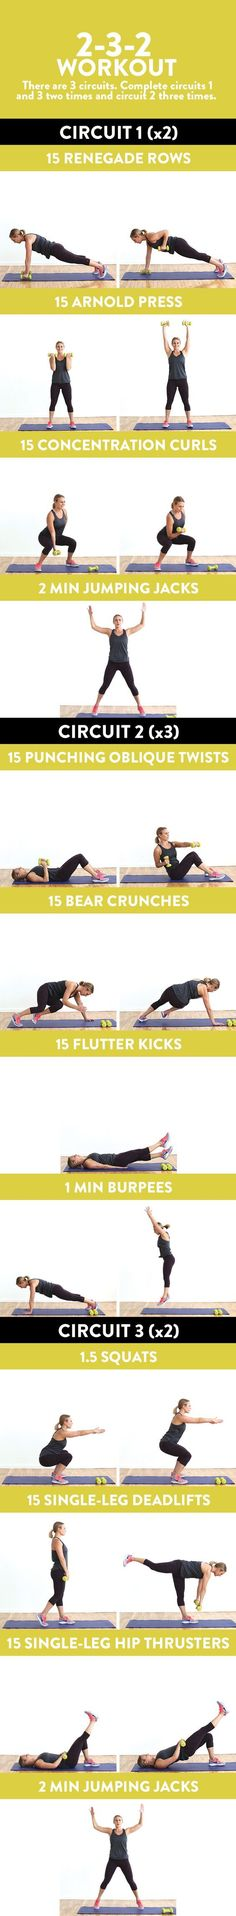 Grab a pair of dumbbells and do the 2-3-2 Workout for a 45-minute, circuit-based strength workout that incorporates bursts of cardio.Grab a pair of dumbb